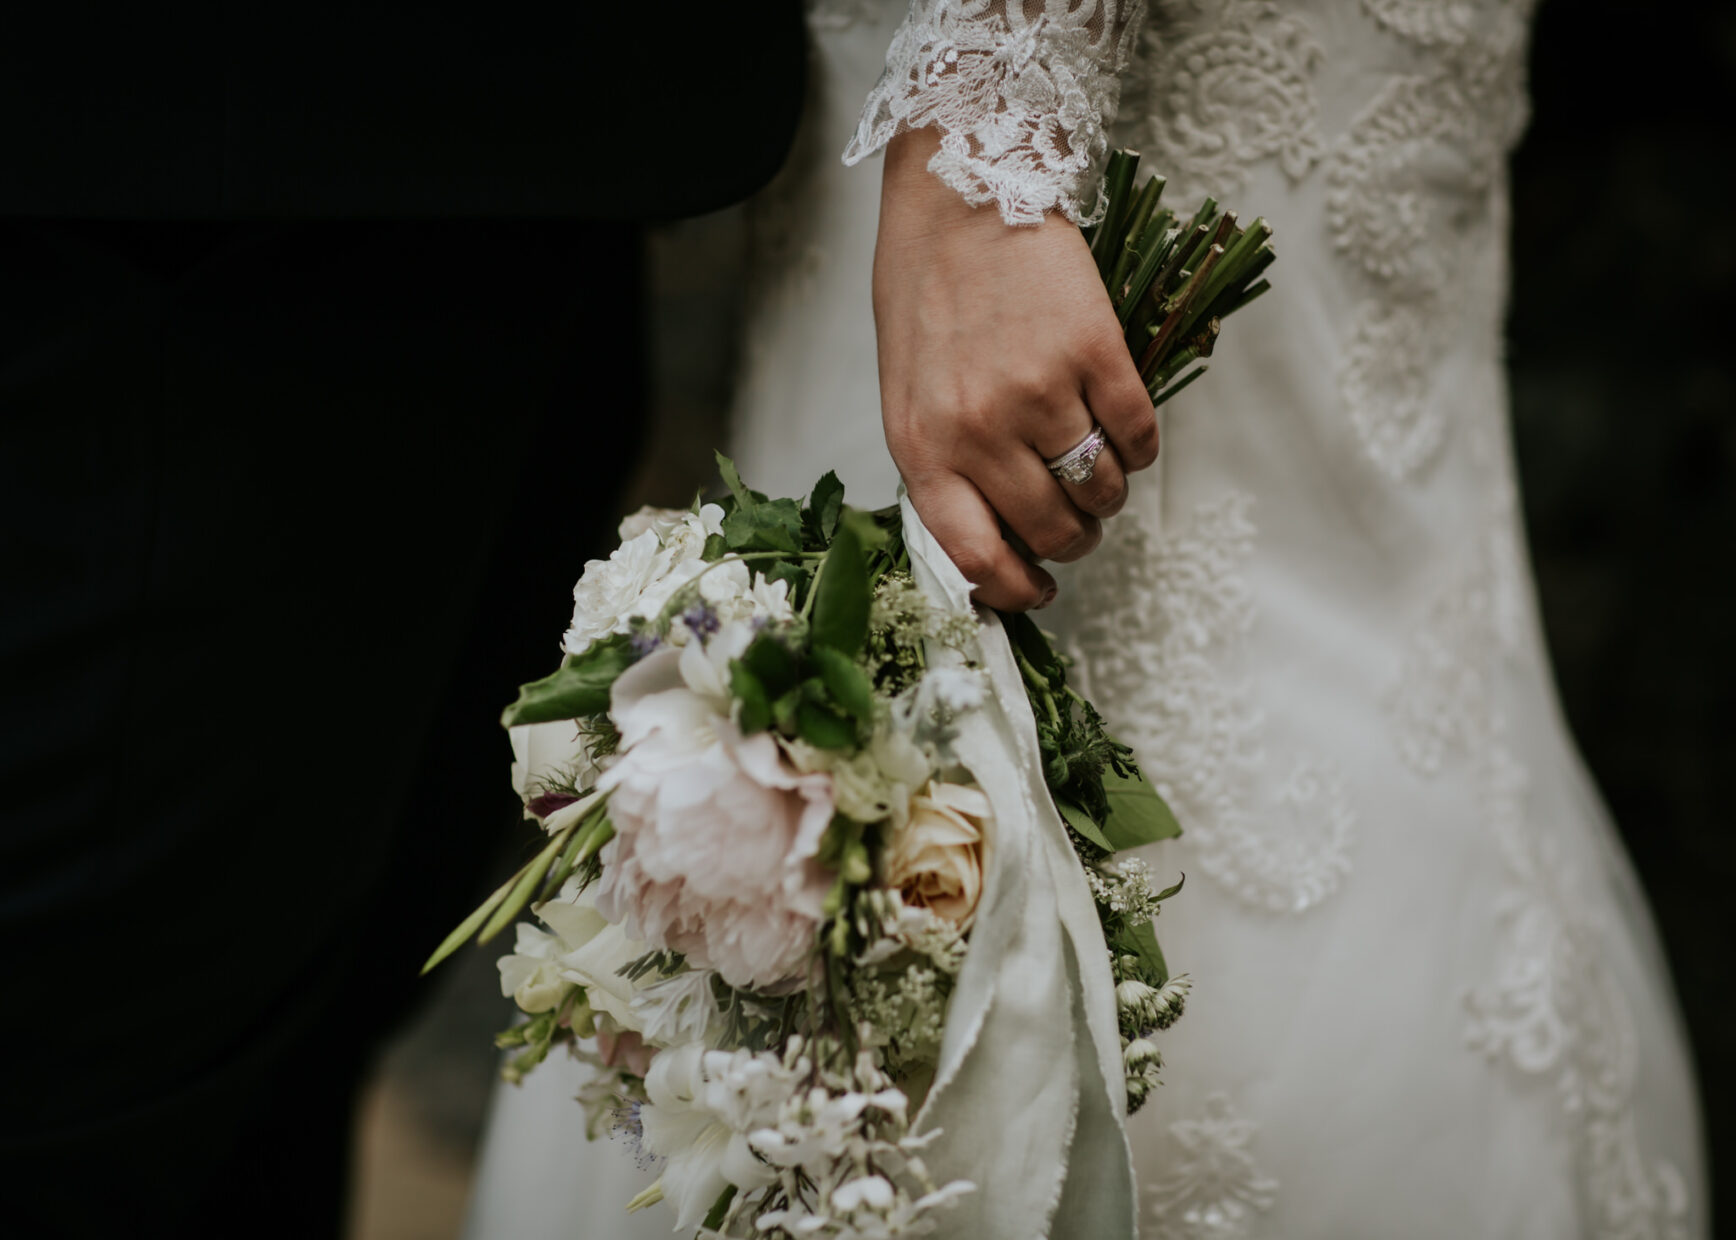 Bride holds her bouquet by her side, her wedding ring on display after her ceremony with a celebrant